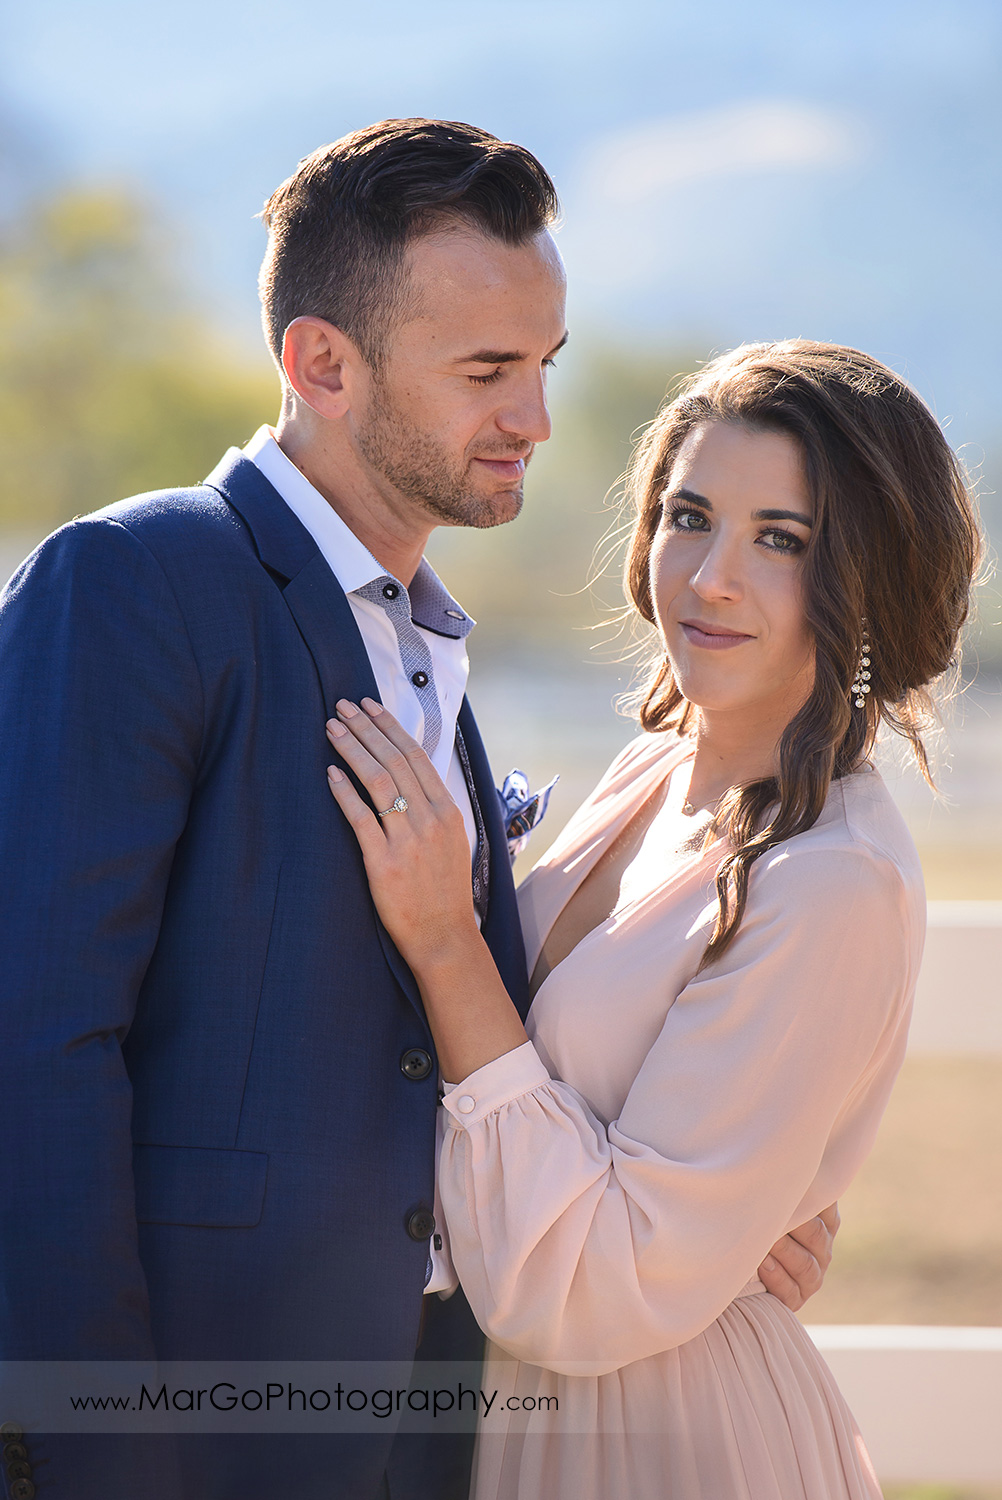 portrait of man in blue suit looking at woman in pink dress looking into camera during Napa Valley engagement session at Tamber Bey Vineyards in Calistoga